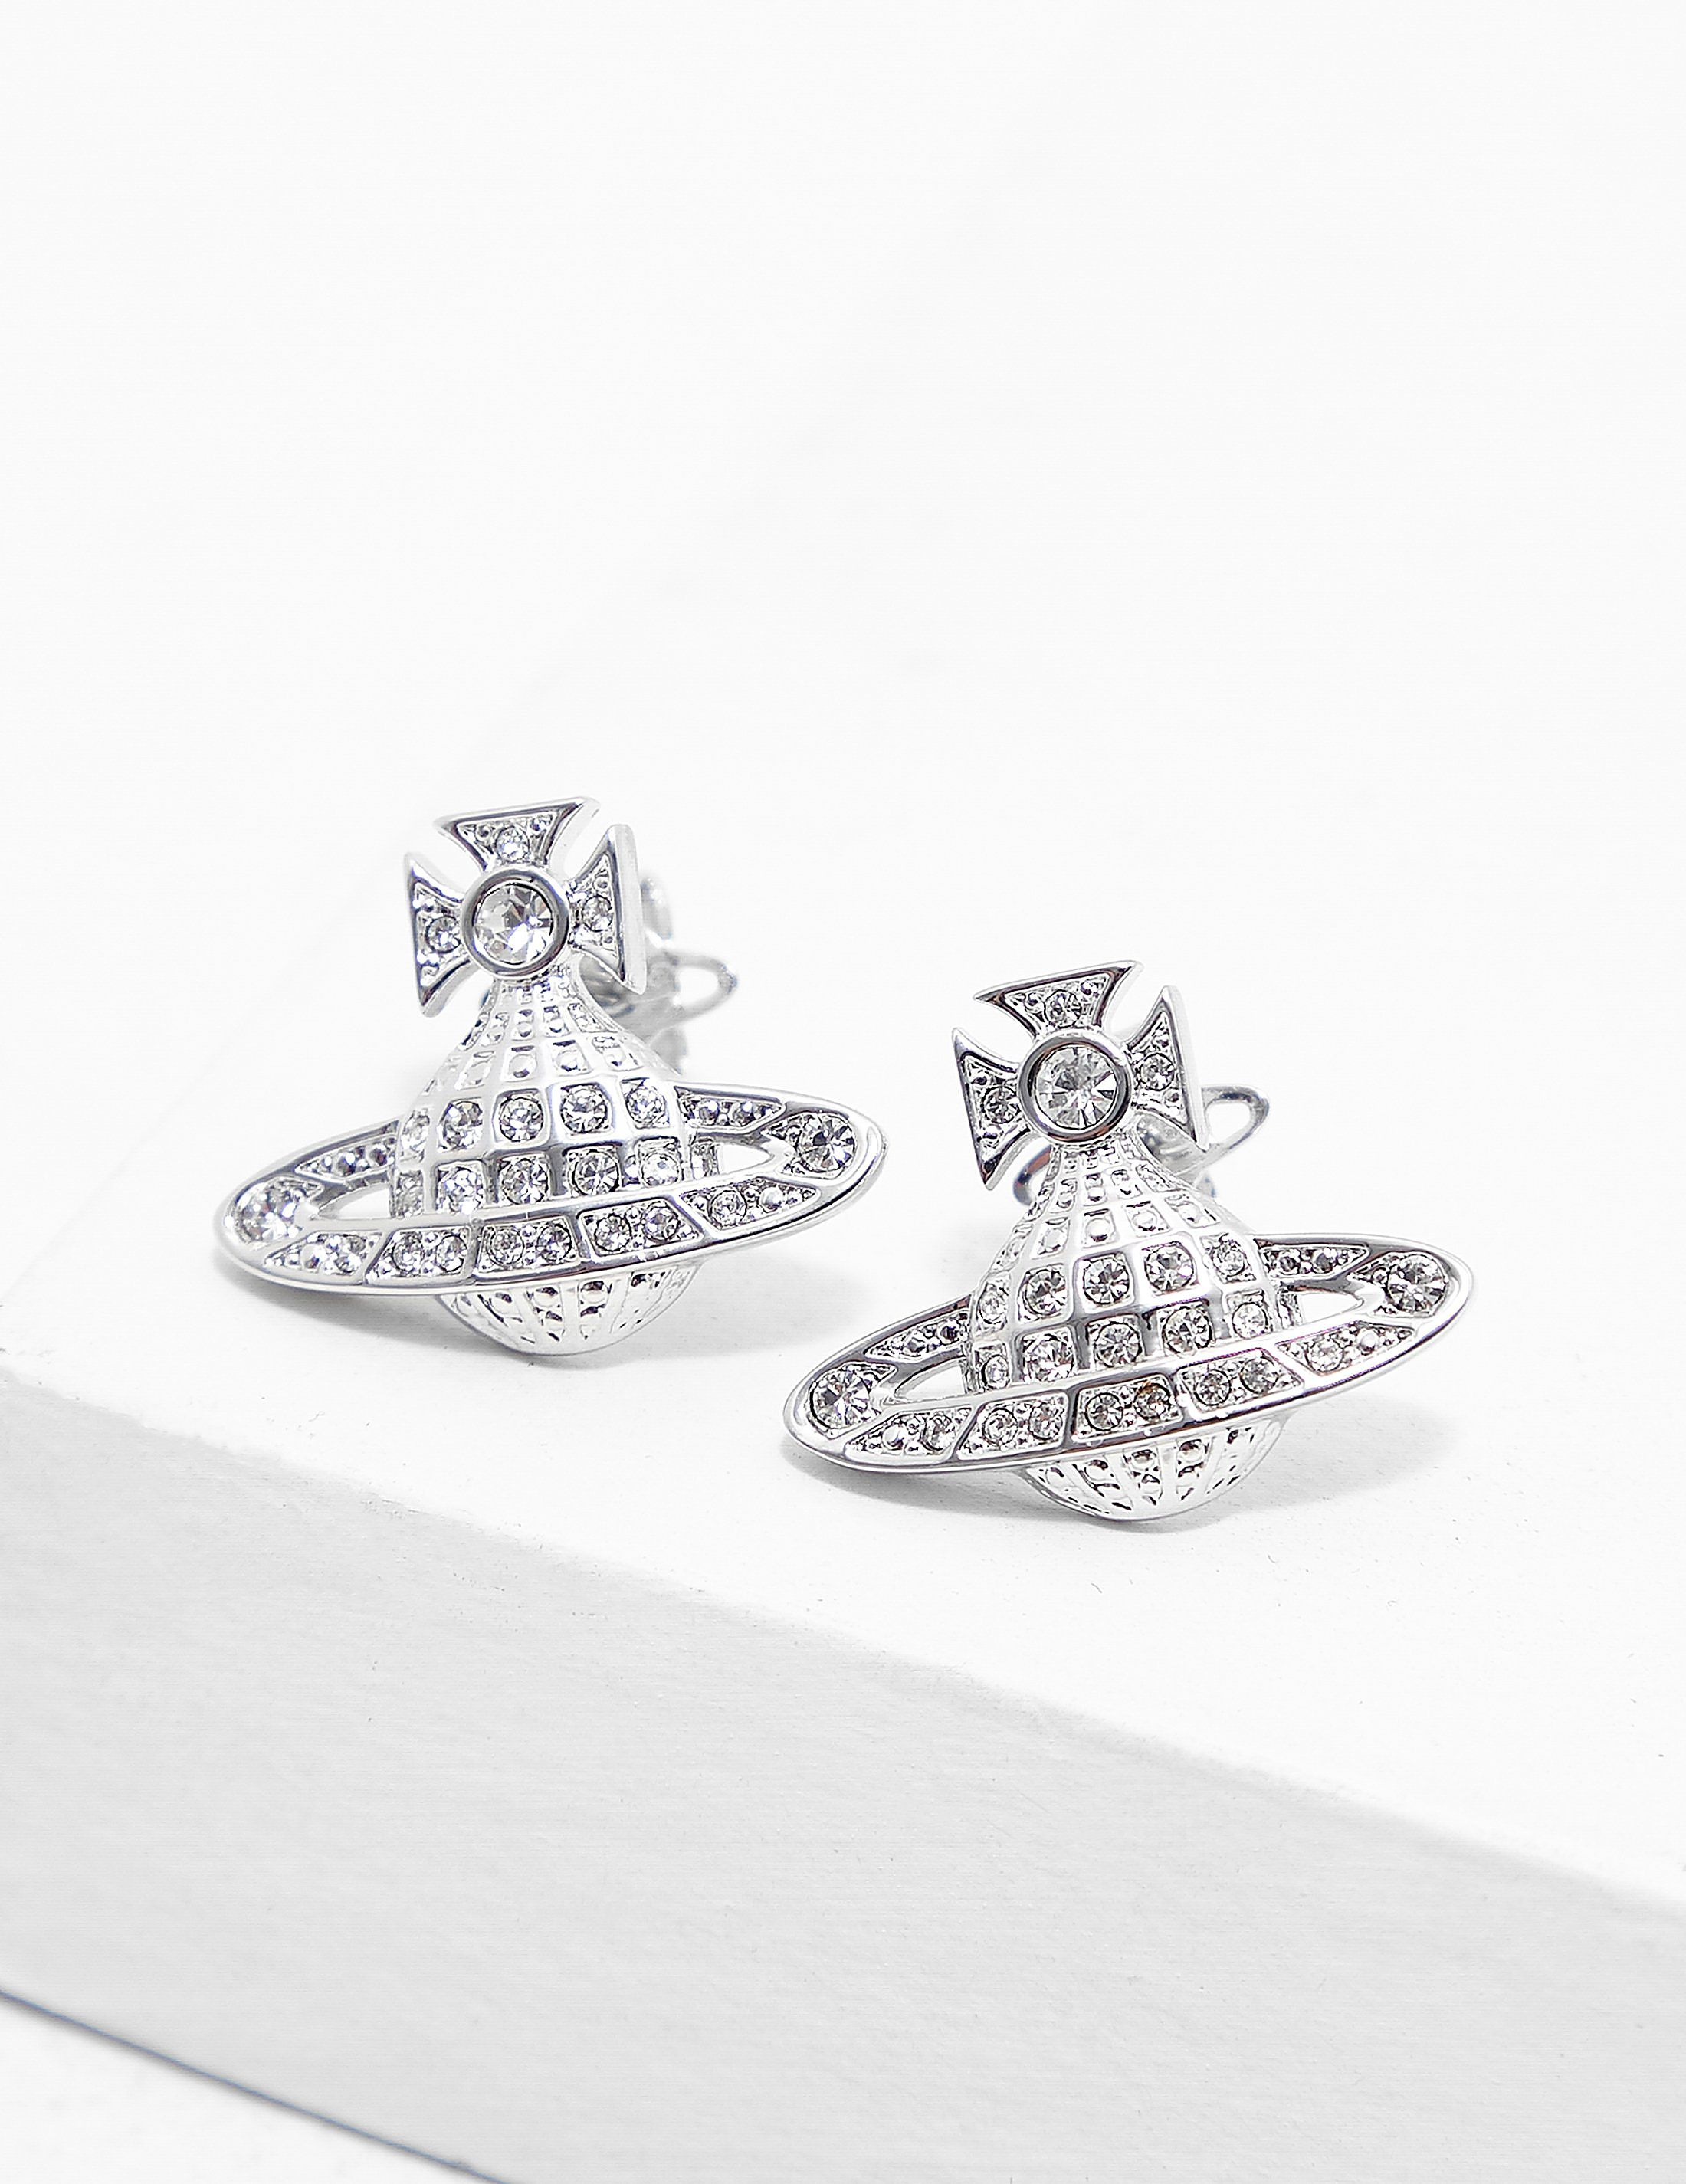 Vivienne Westwood Minnie Earrings by Tessuti